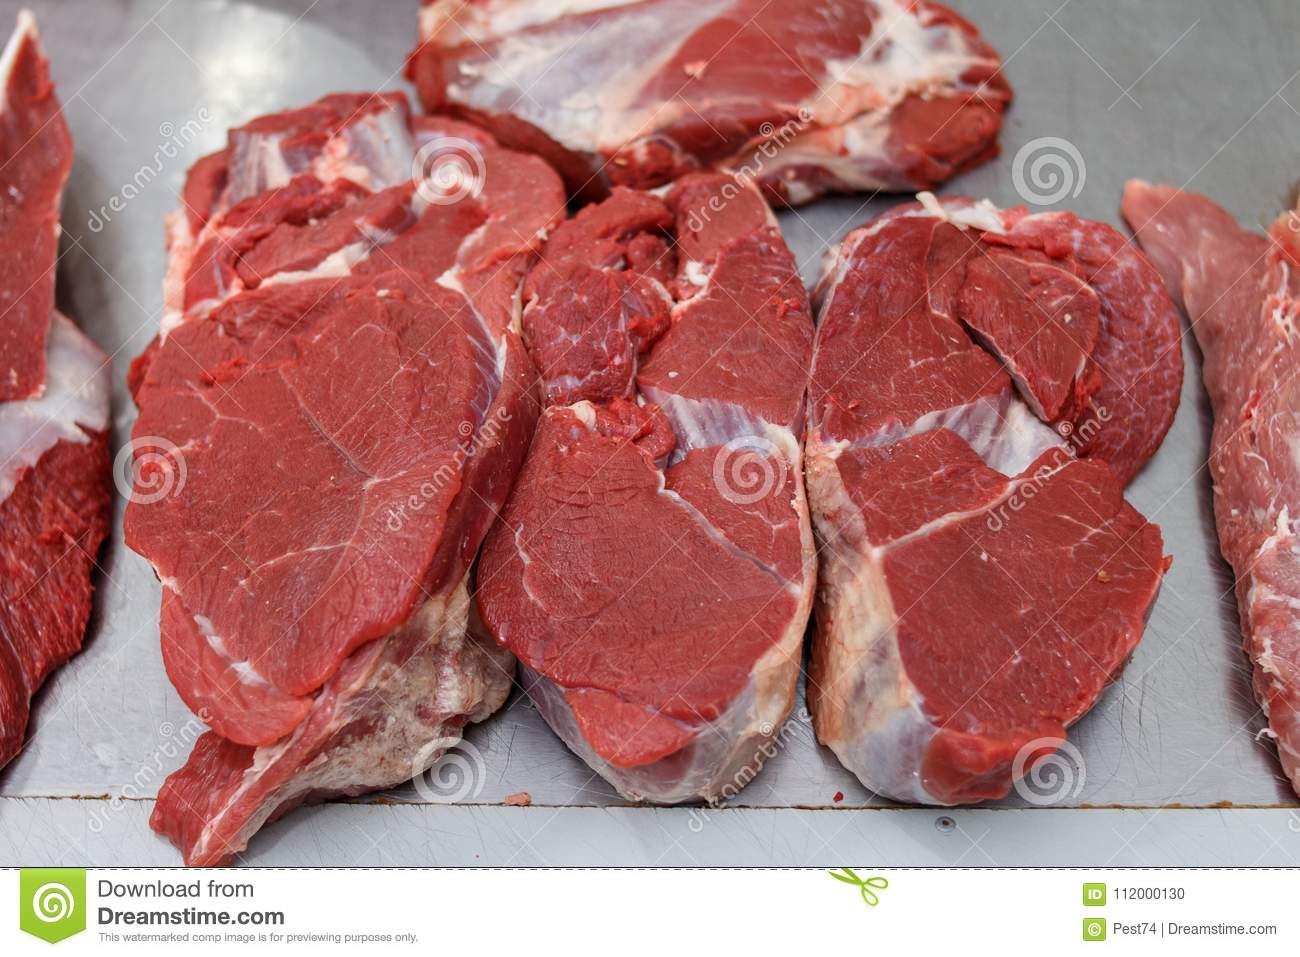 Beef. raw meat on the market